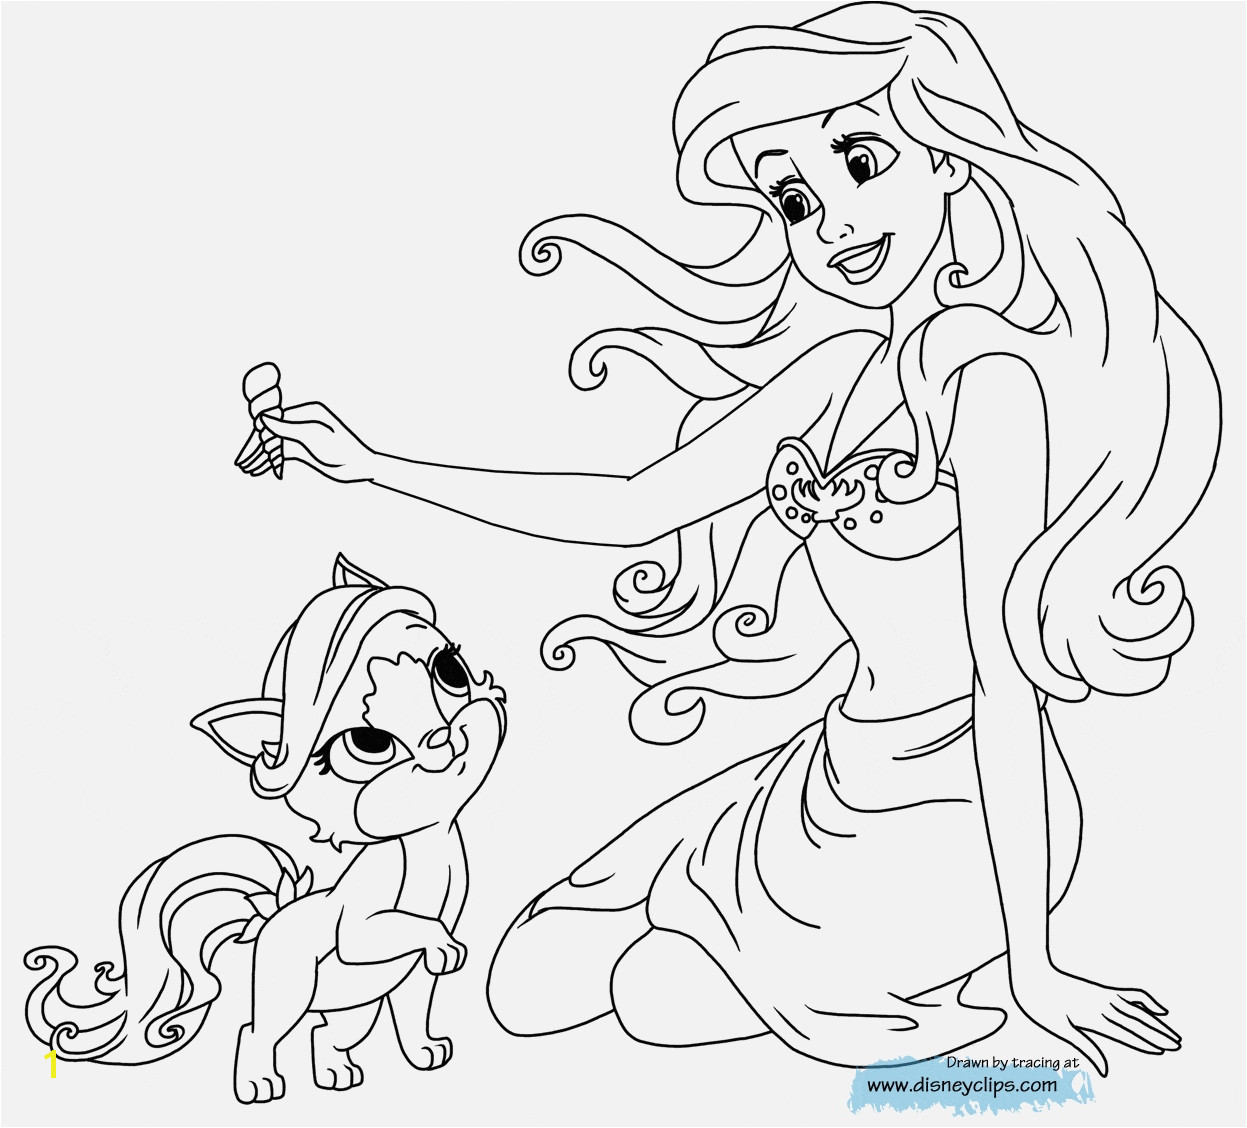 Sheriff Callie Coloring Pages Best Easy Petitive Kate and Mim Coloring Pages Sheriff Callie Colouring at